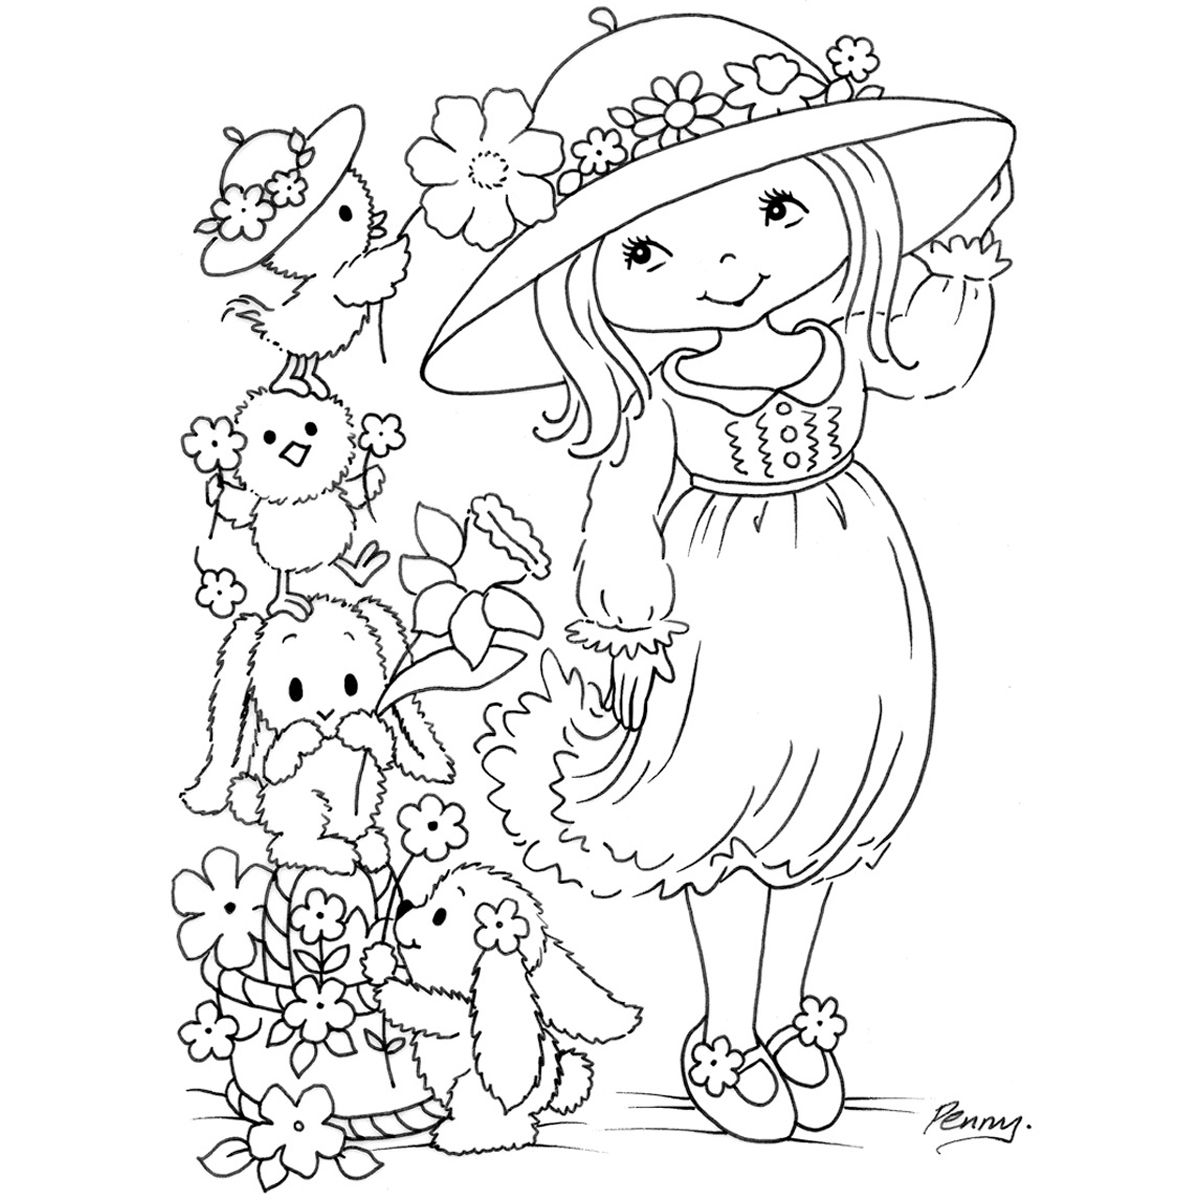 Pin by mary on digi stamps pinterest digi stamps craft and